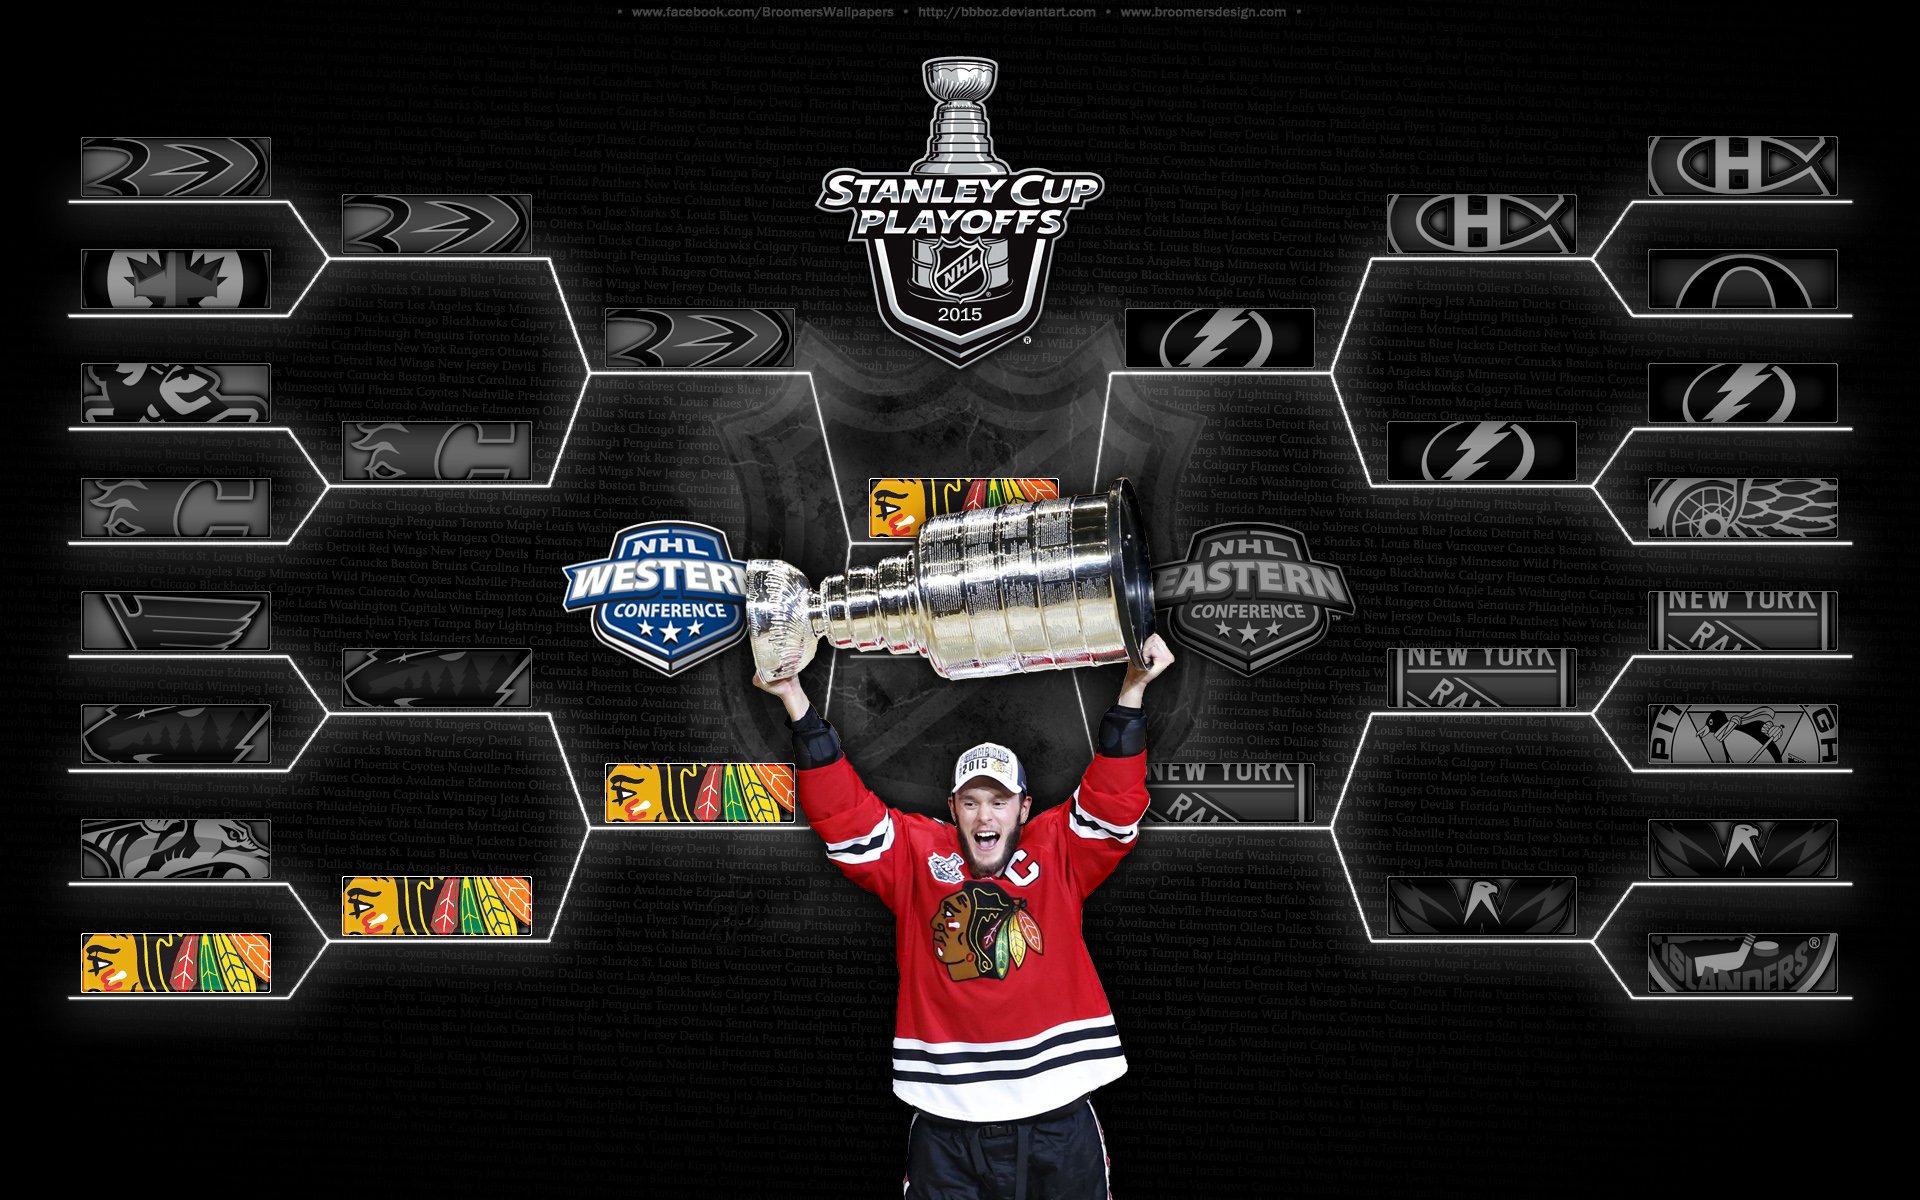 2015 stanley cup champions by bbboz watch fan art wallpaper other 2015 1920x1200